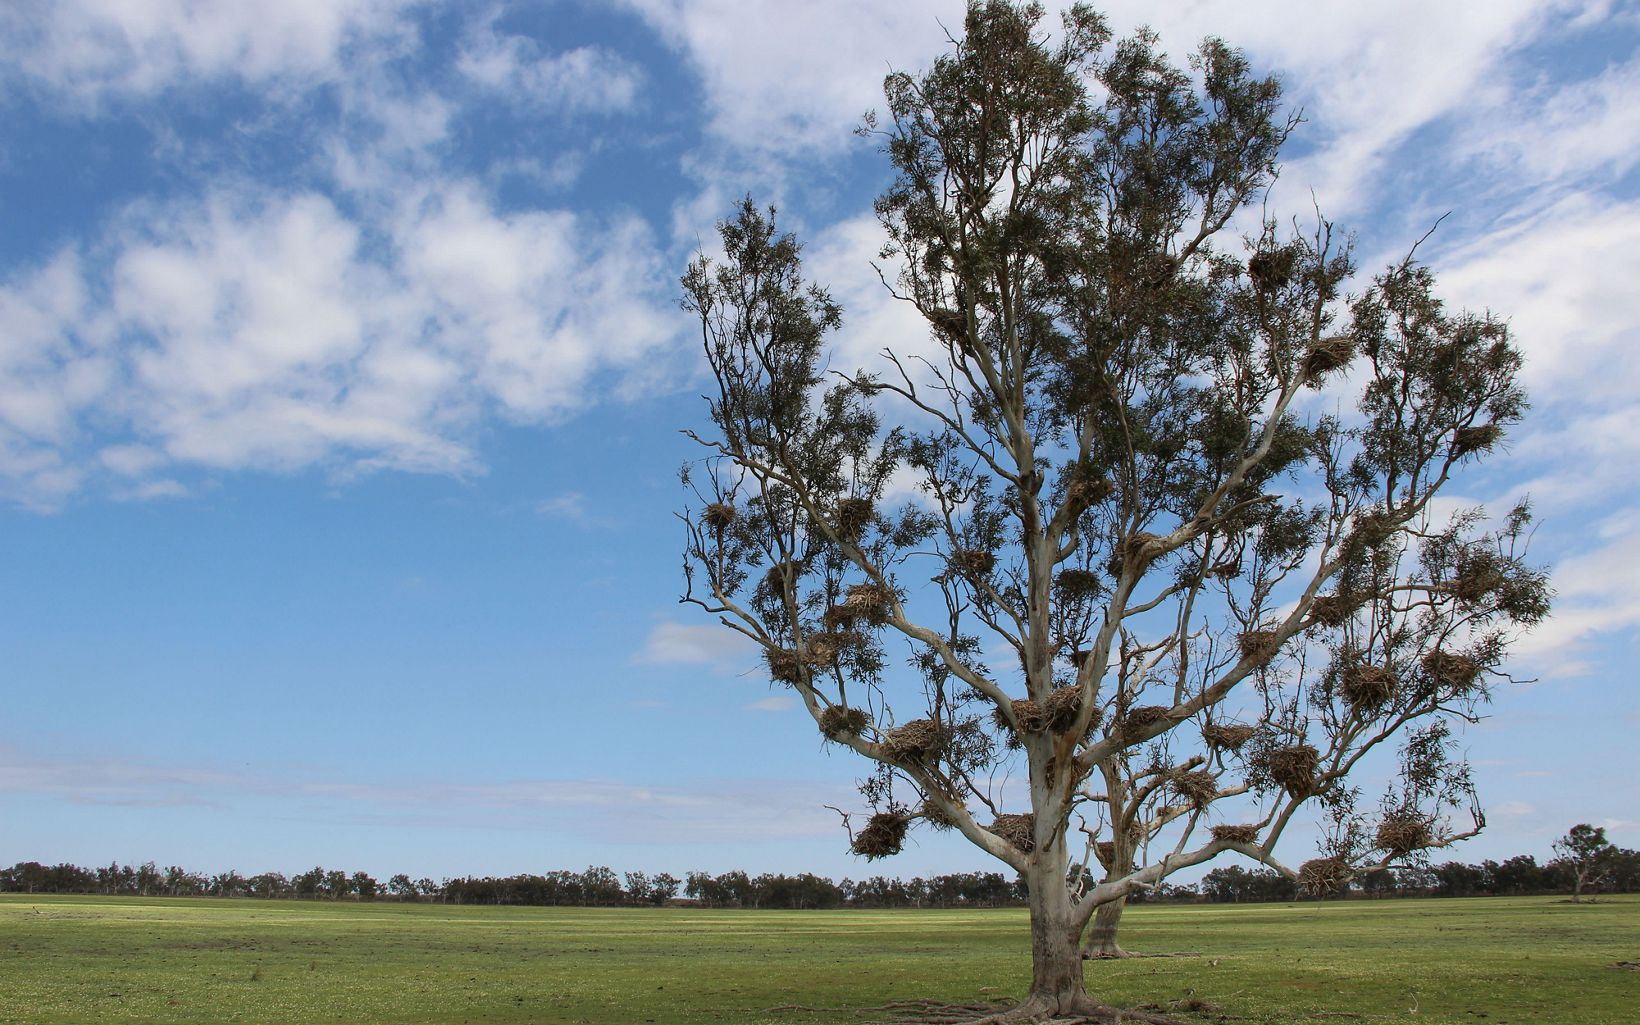 A River Red Gum, crowded with cormorant nests from a previous flooding event, stands in the dry lake bed